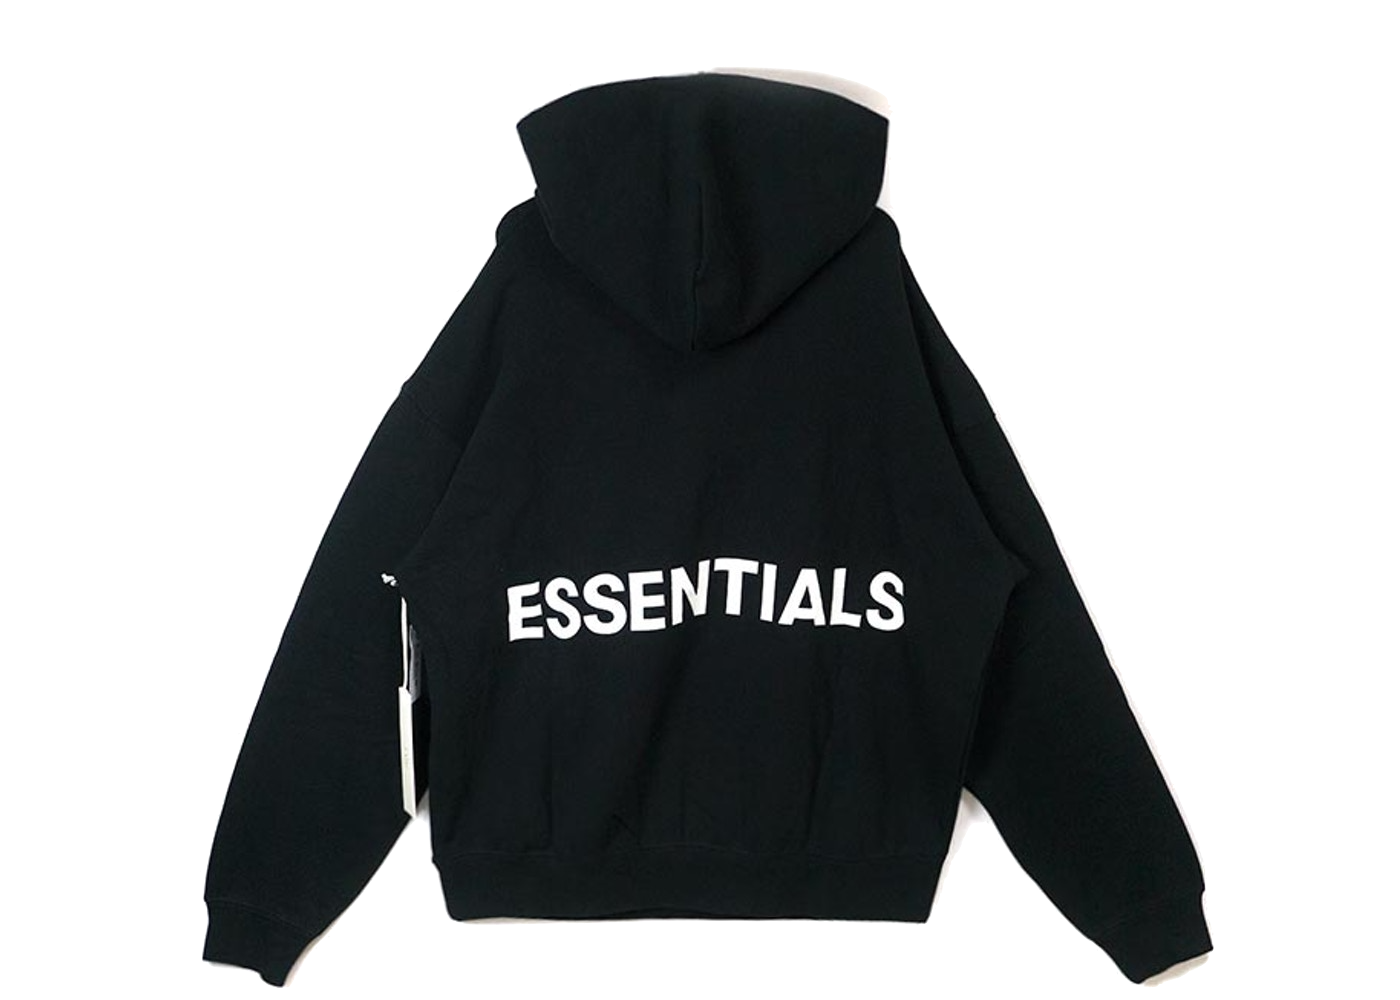 Fear of God Essentials Graphic Pullover Hoodie Black - Baza Bazaar